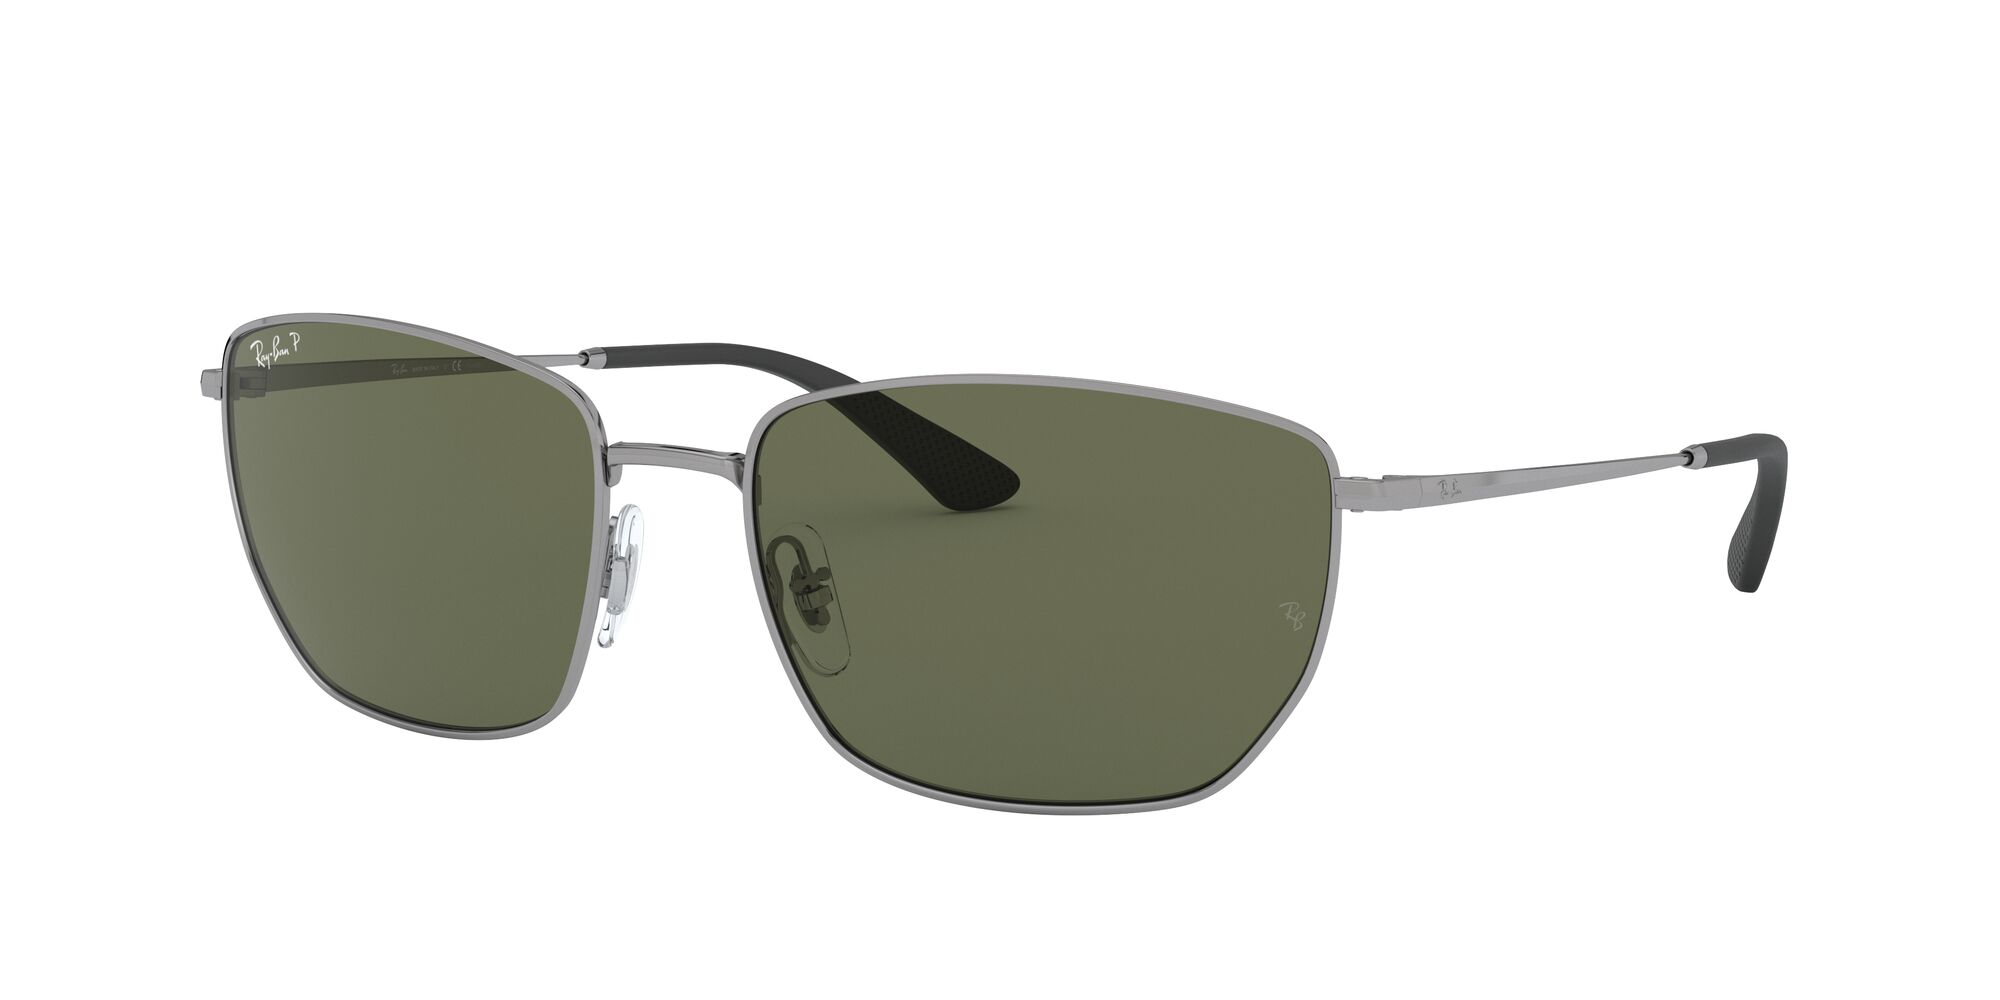 Angle_Left01 Ray-Ban Ray-Ban 0RB3653 004/9A 60/18 Zilver/Groen